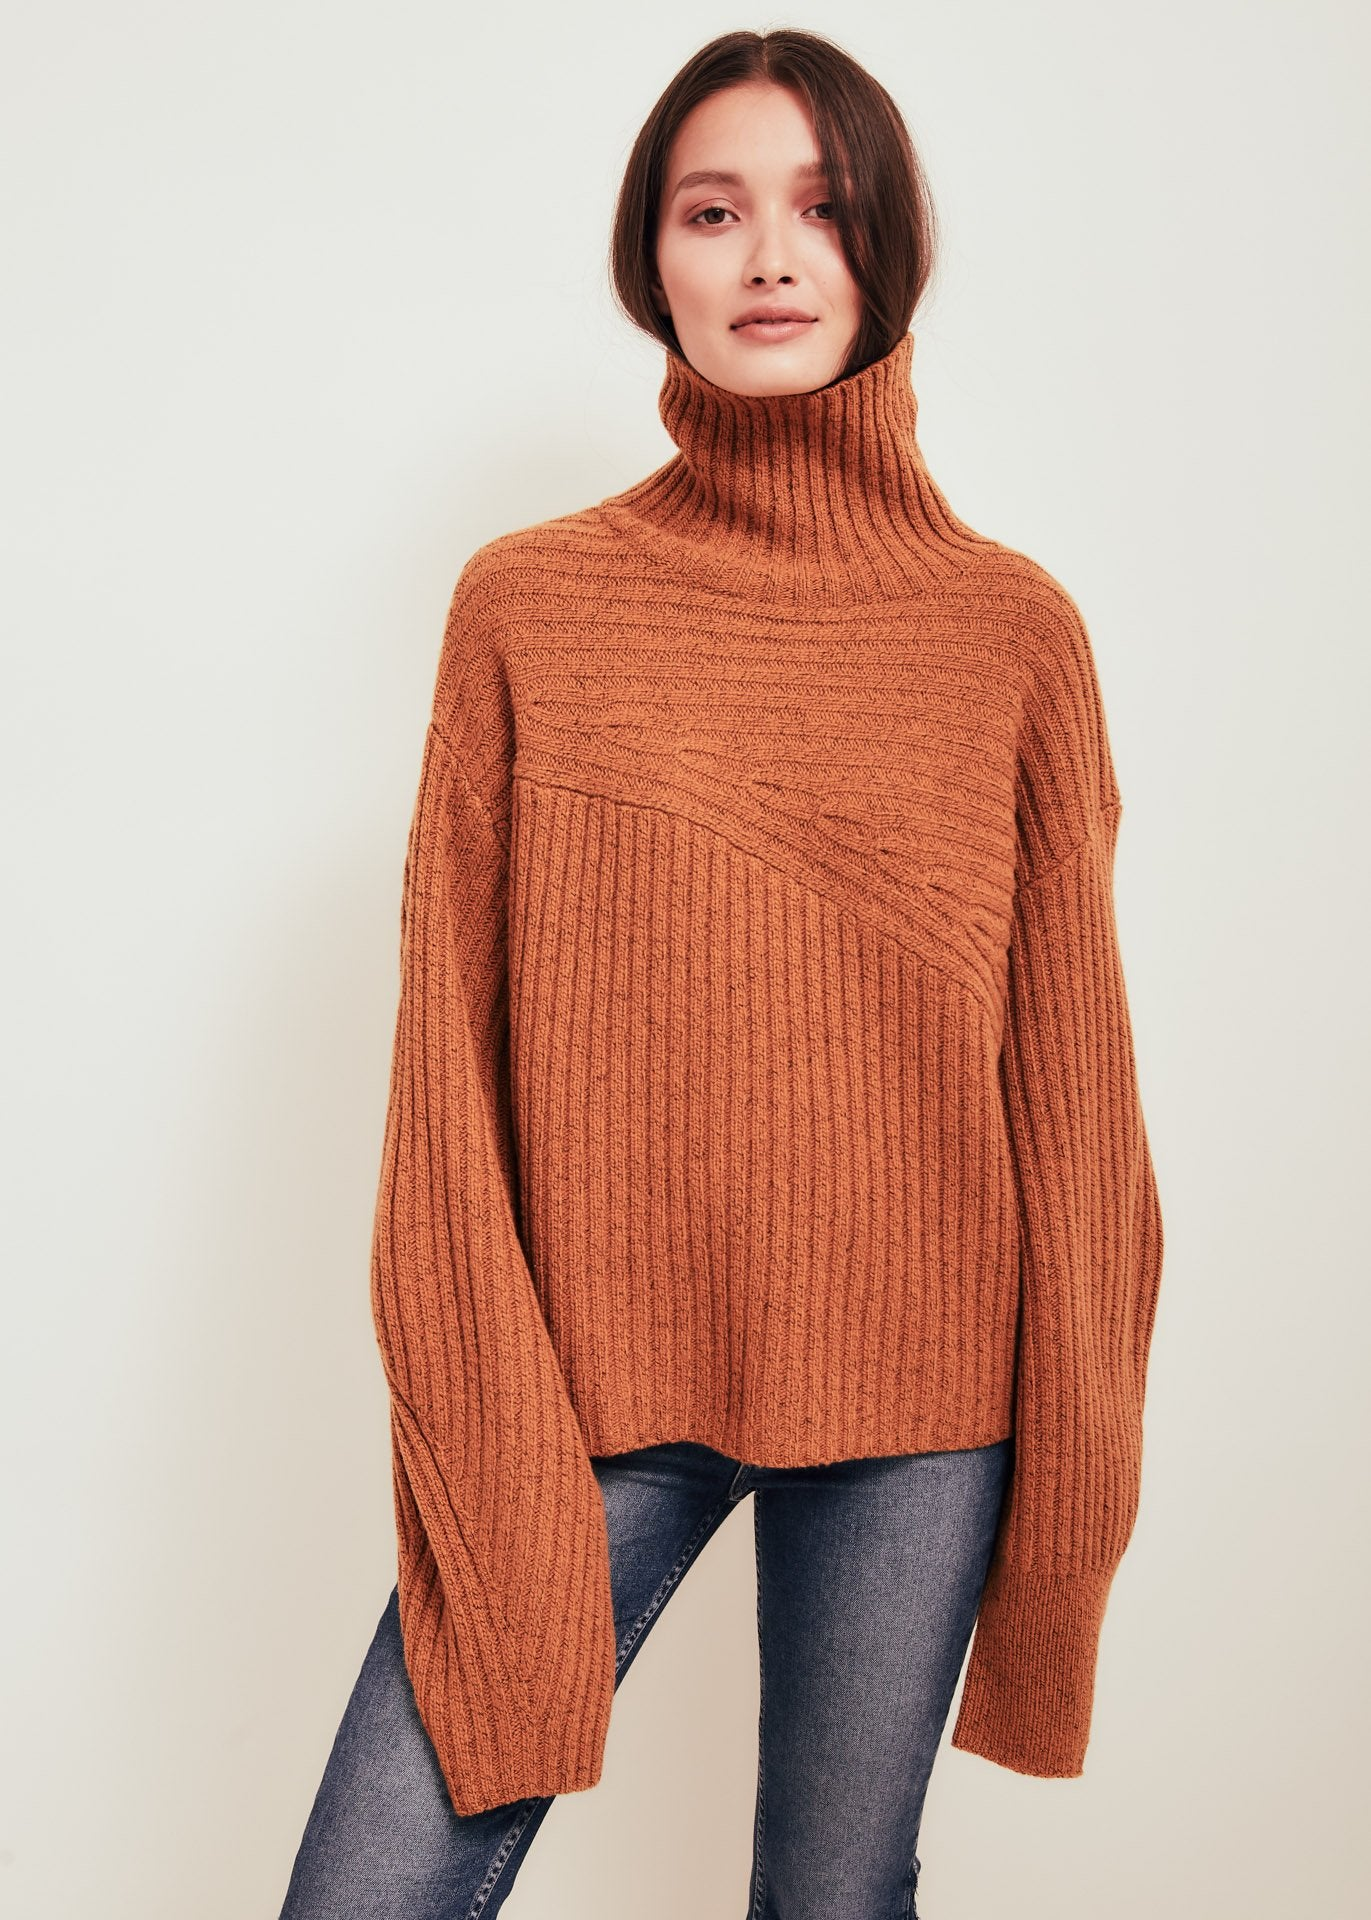 Orange Wool Blend Turtleneck Sweater - Matin